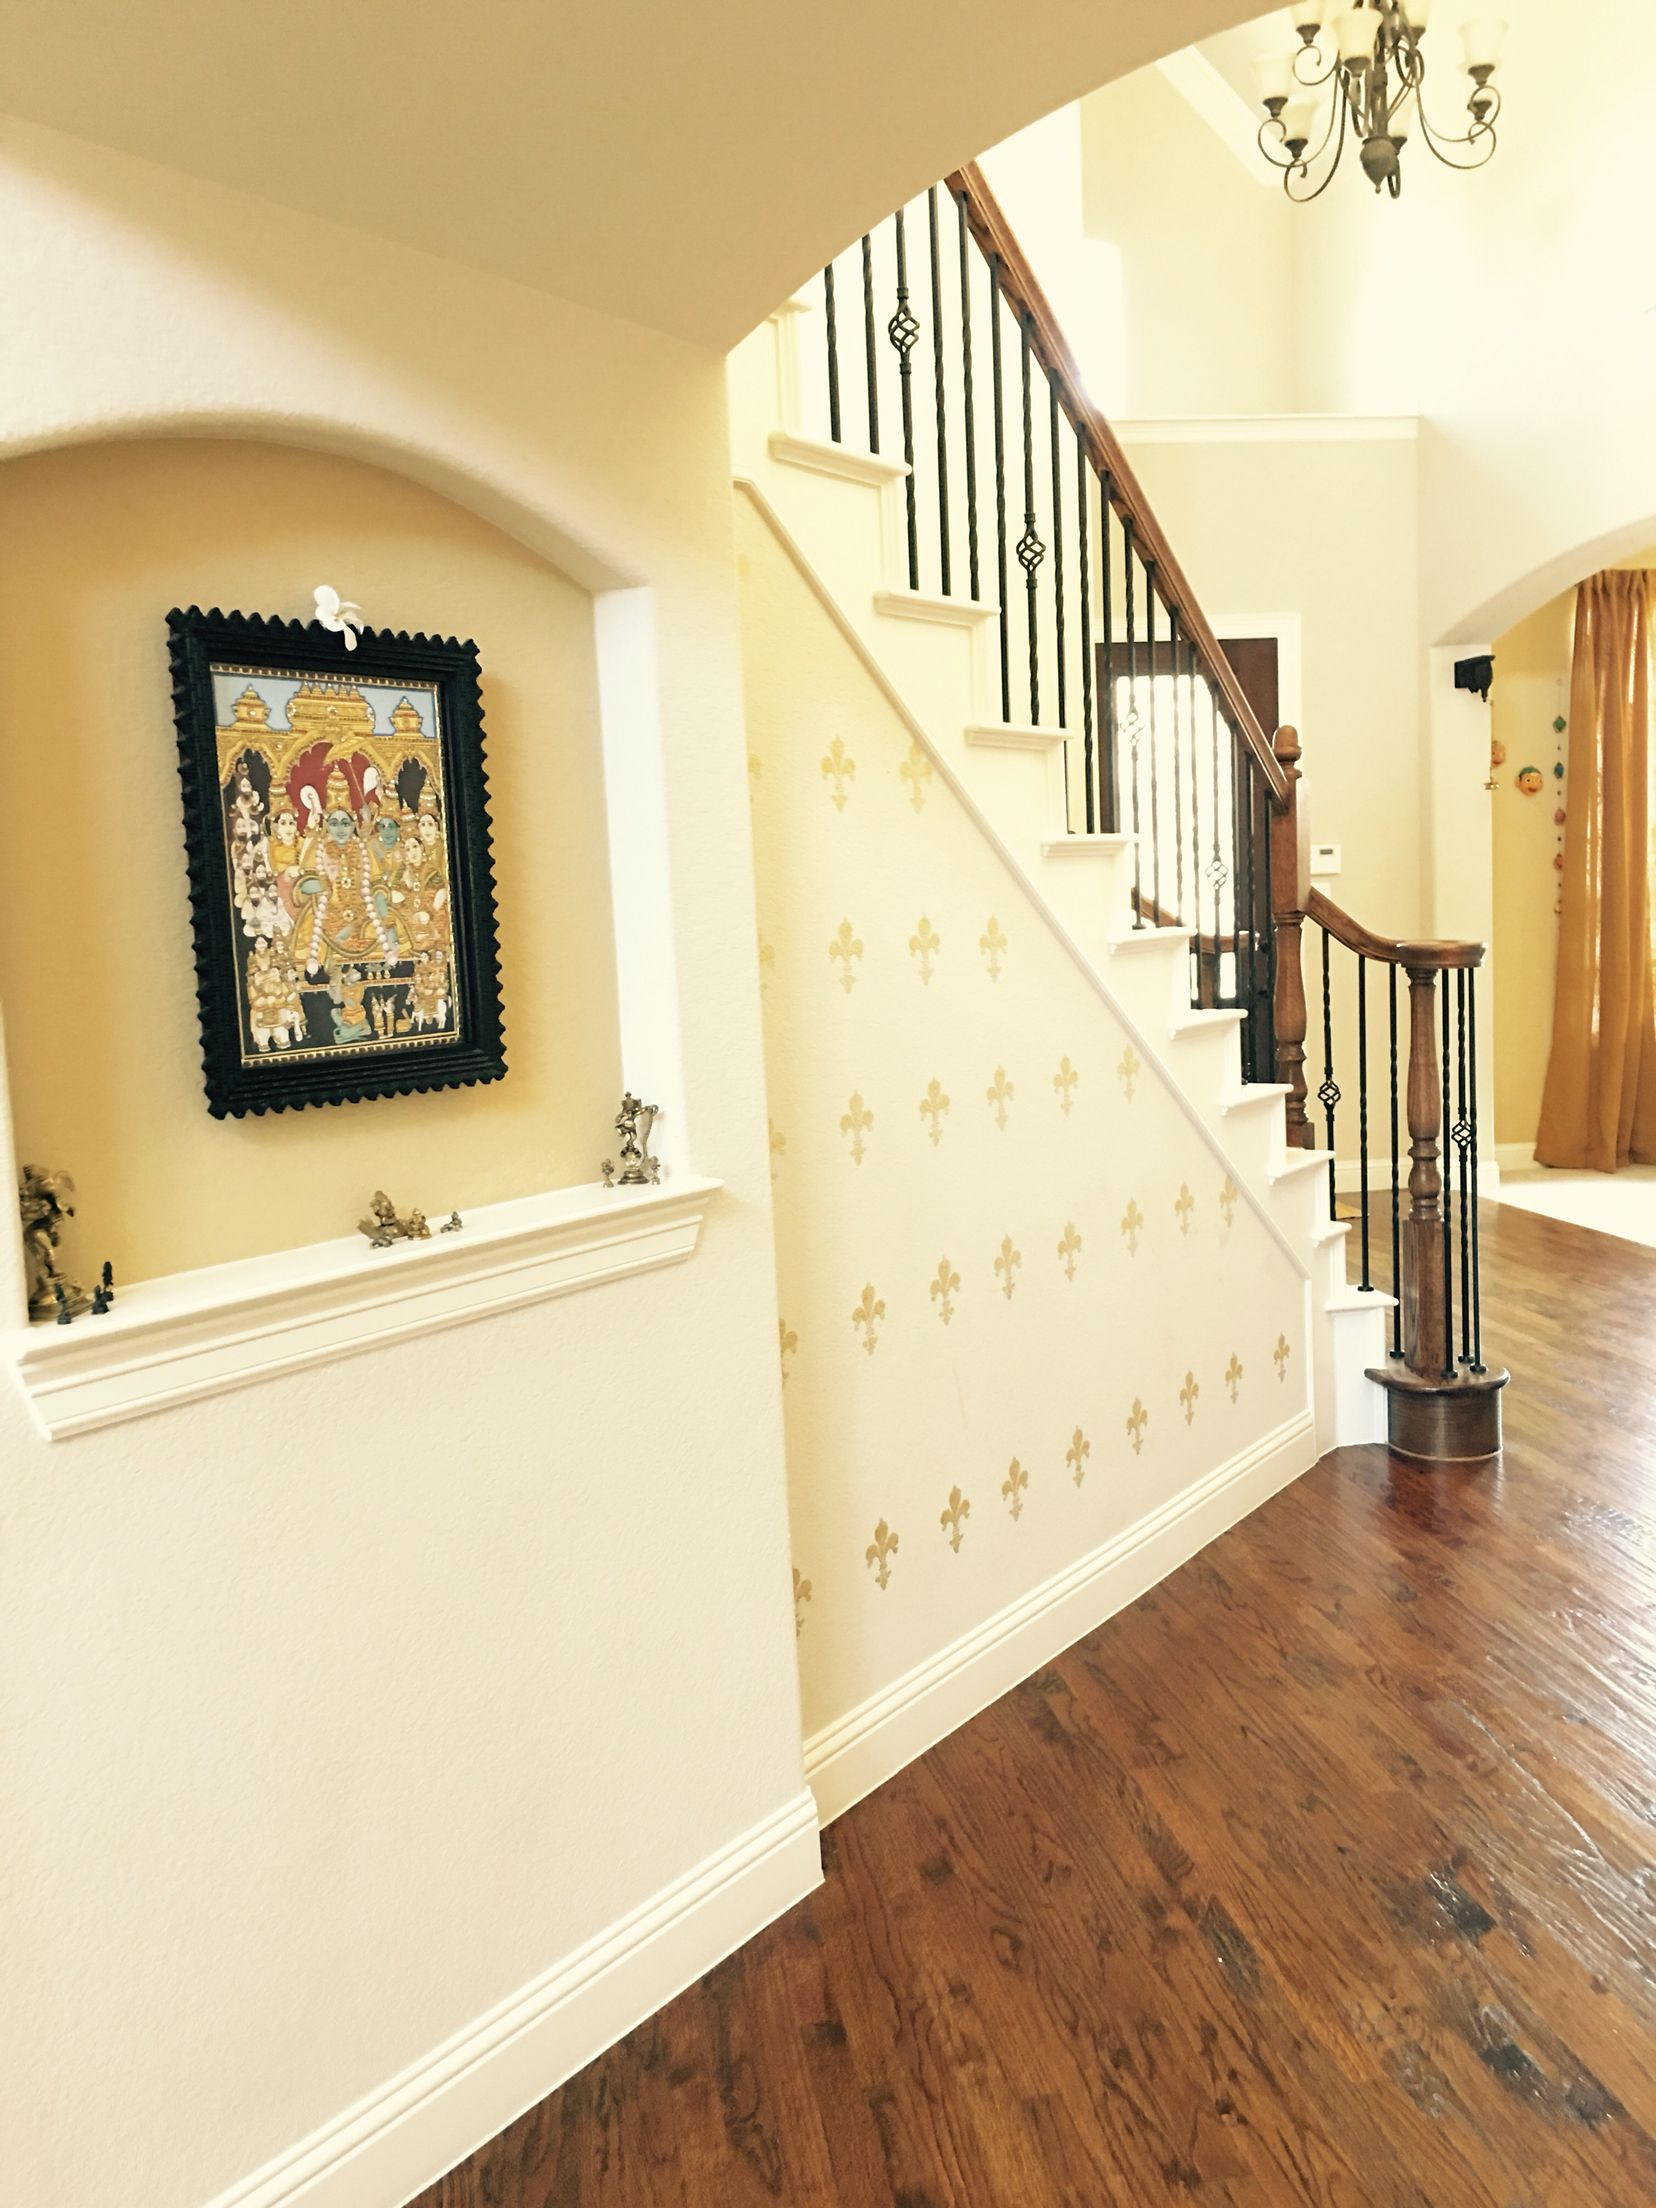 Wall stenciling entryway | My Home Editions | Pinterest | Walls ...